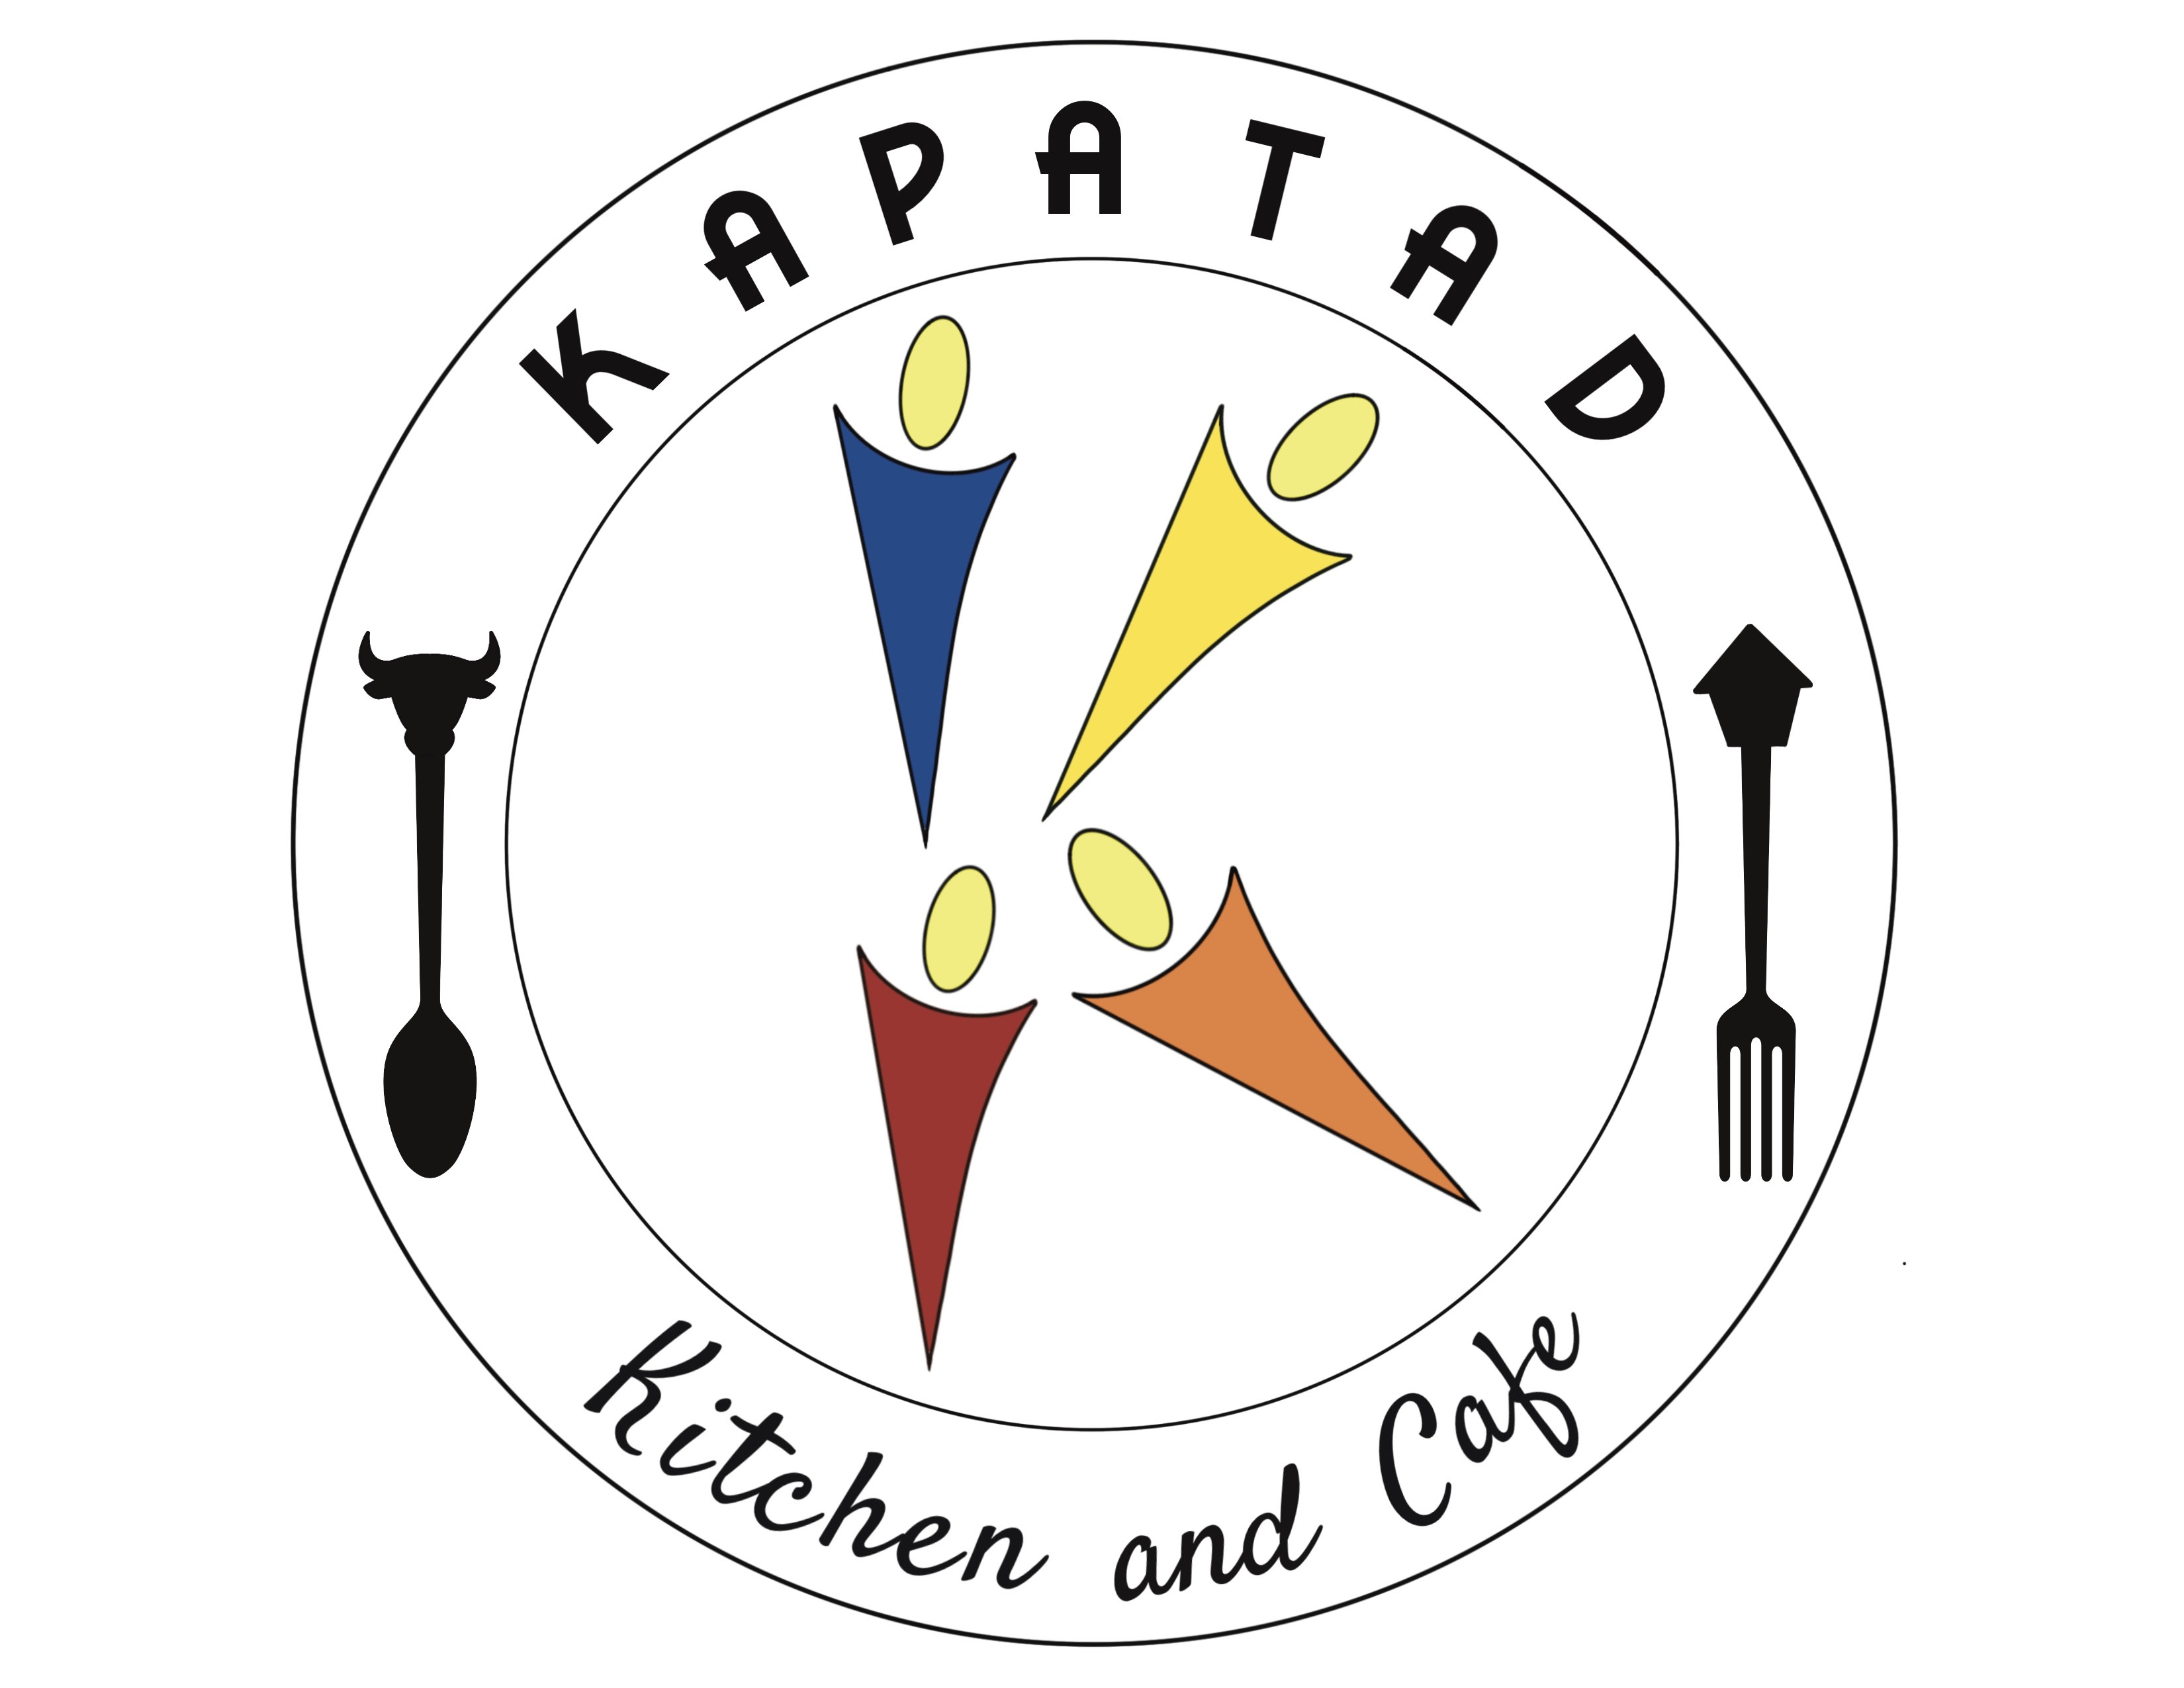 Kapatad Kitchen and Cafe